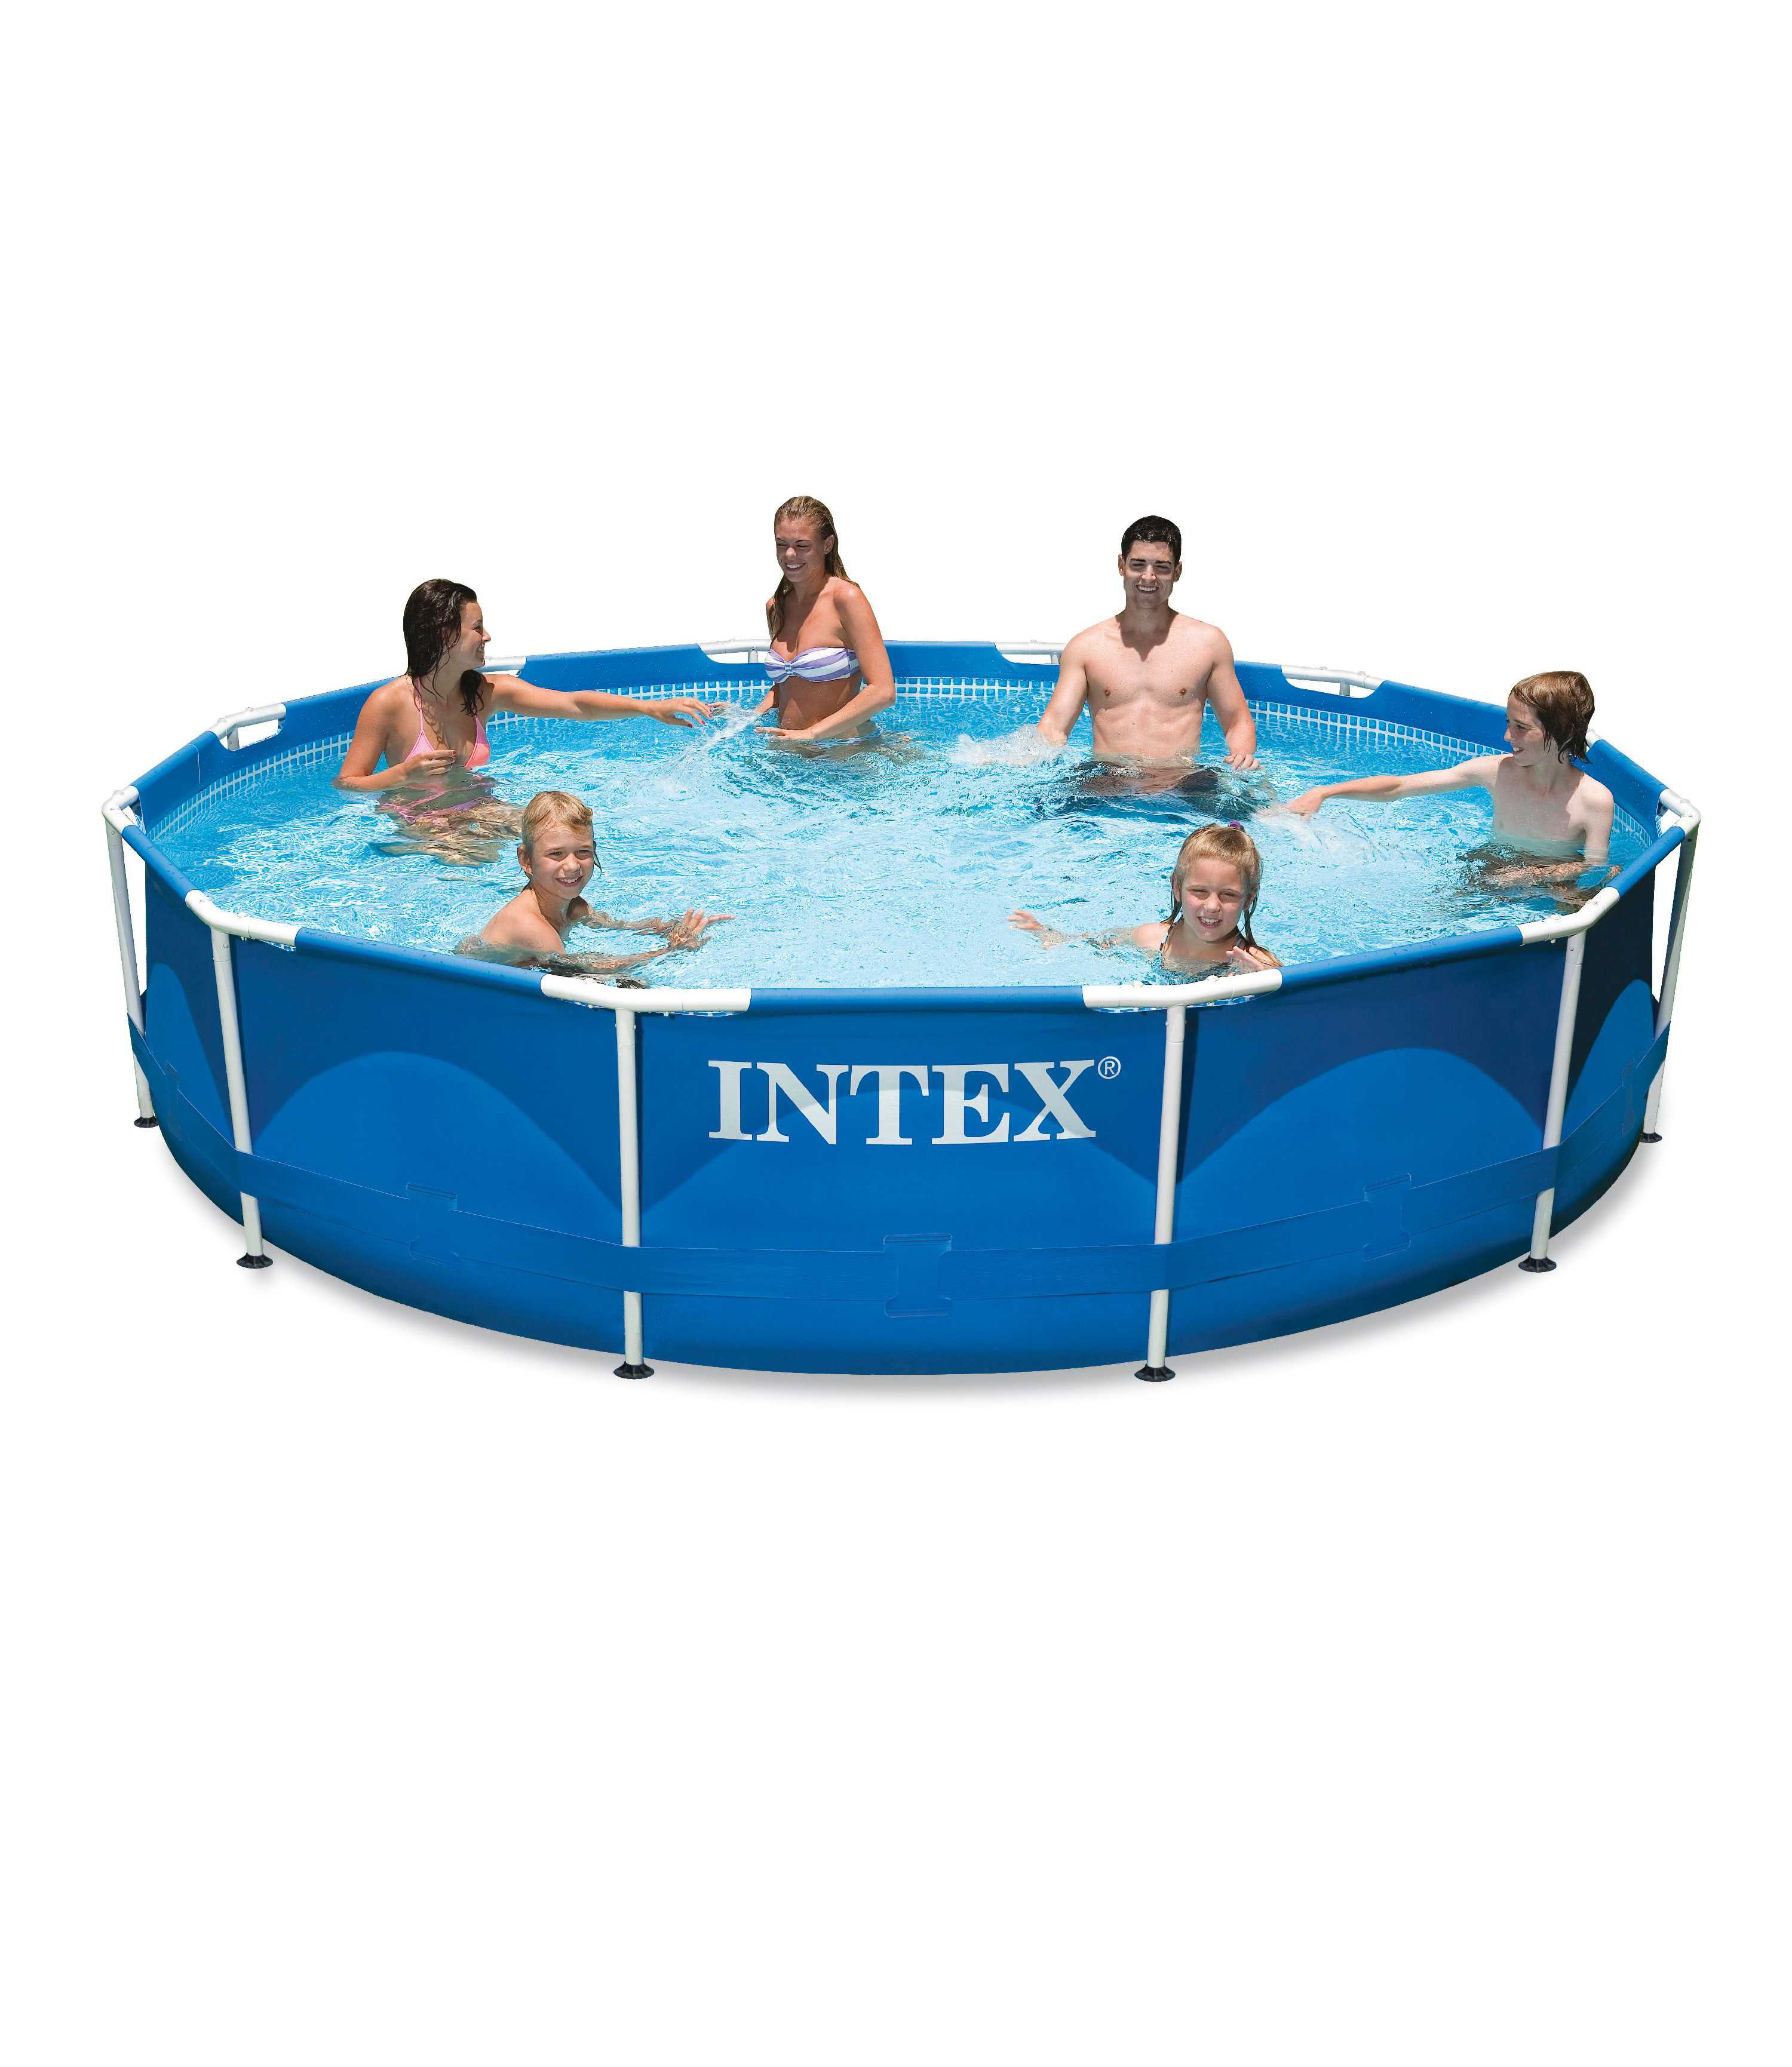 Scaffold Round Pool For Garden Summer Leisure Outdoor Size 305x76 Cm, 4485 L, Intex Metal Frame, Item No. 28200